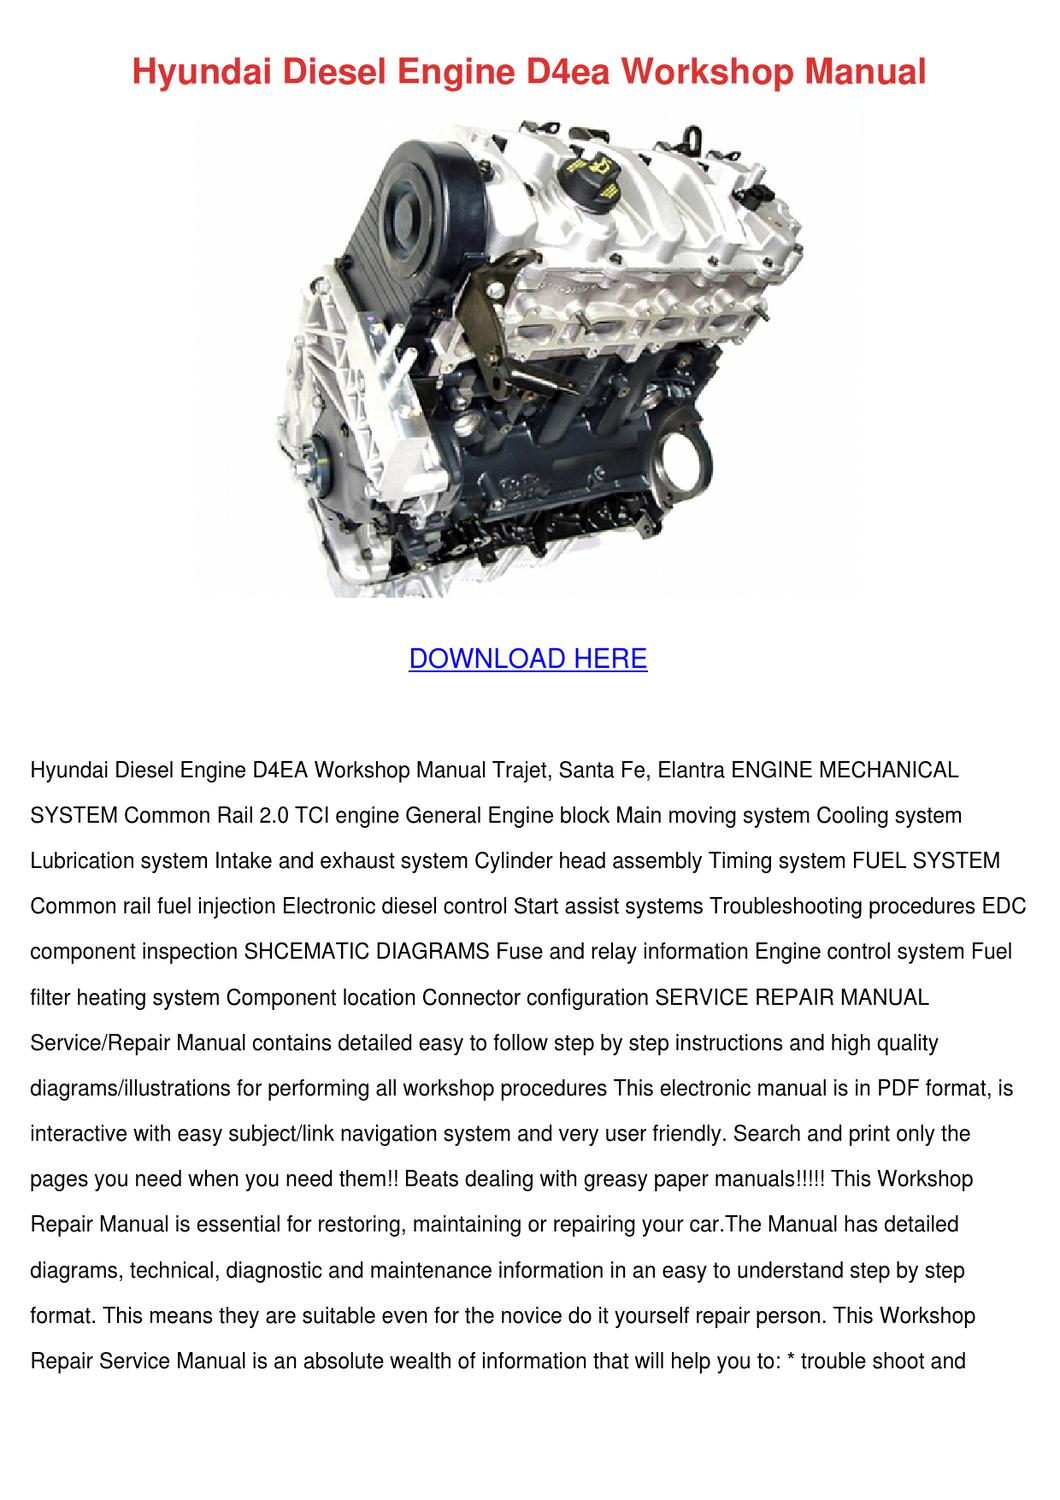 Hyundai Diesel Engine D4ea Workshop Manual By Marisol Spritzer Issuu Diagram Intake Area